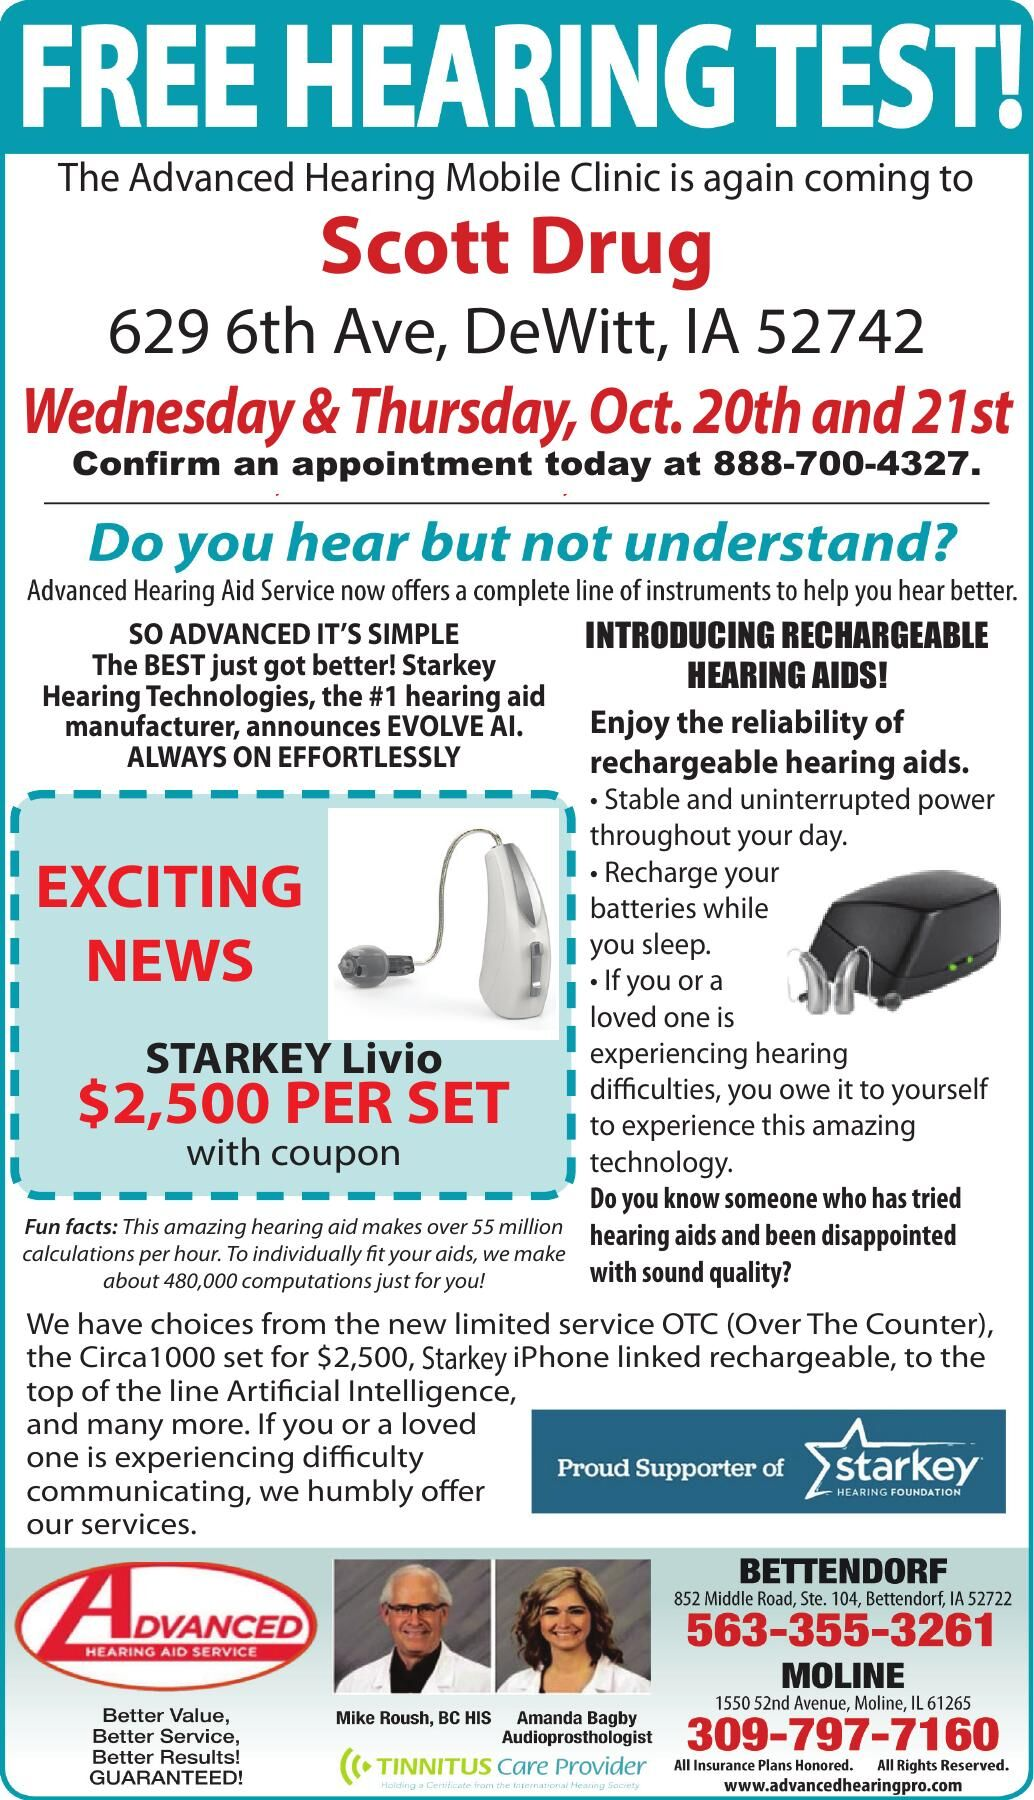 The Advanced Hearing Mobile Clinic is again coming to